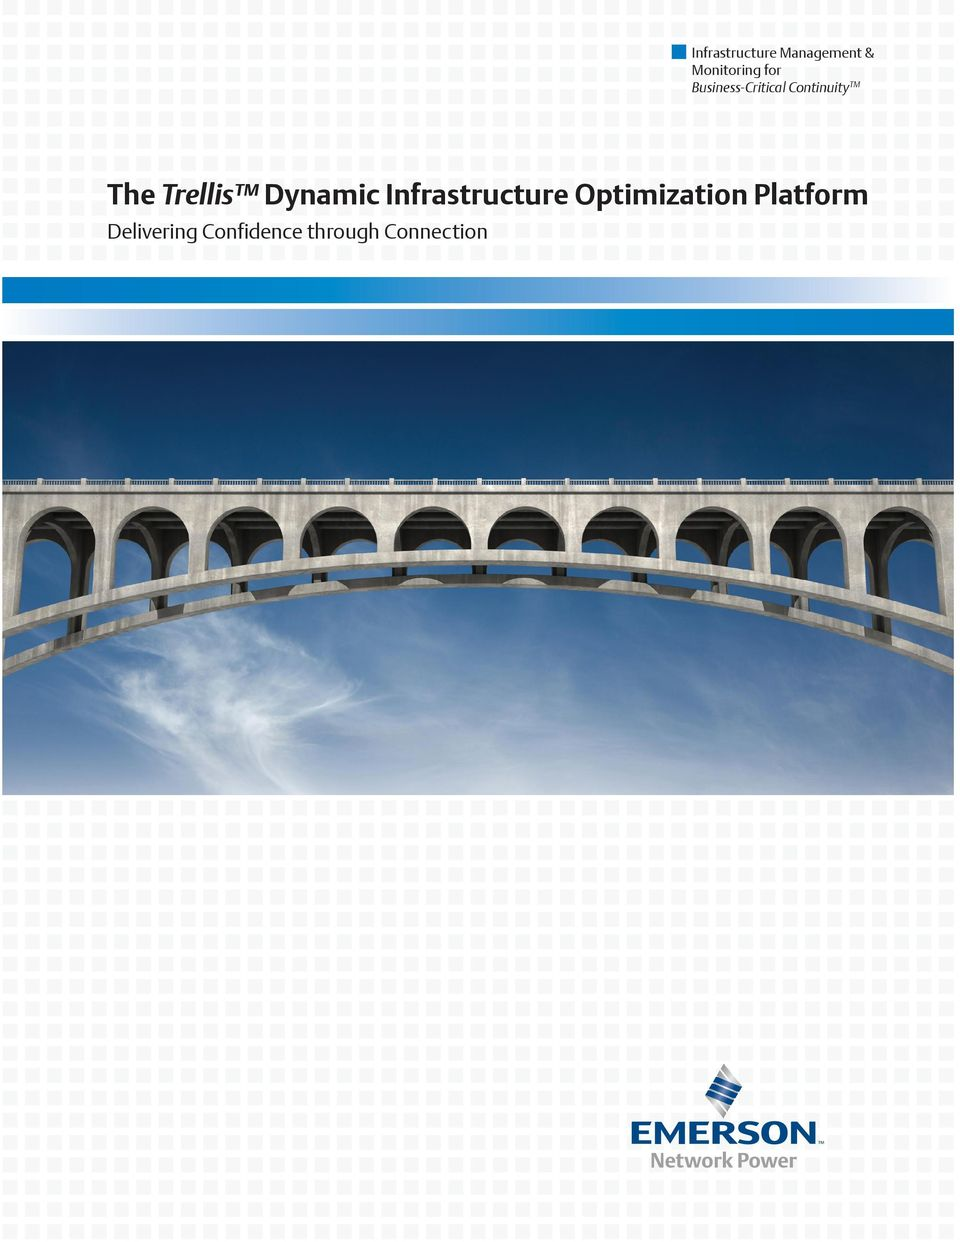 Trellis Dynamic Infrastructure